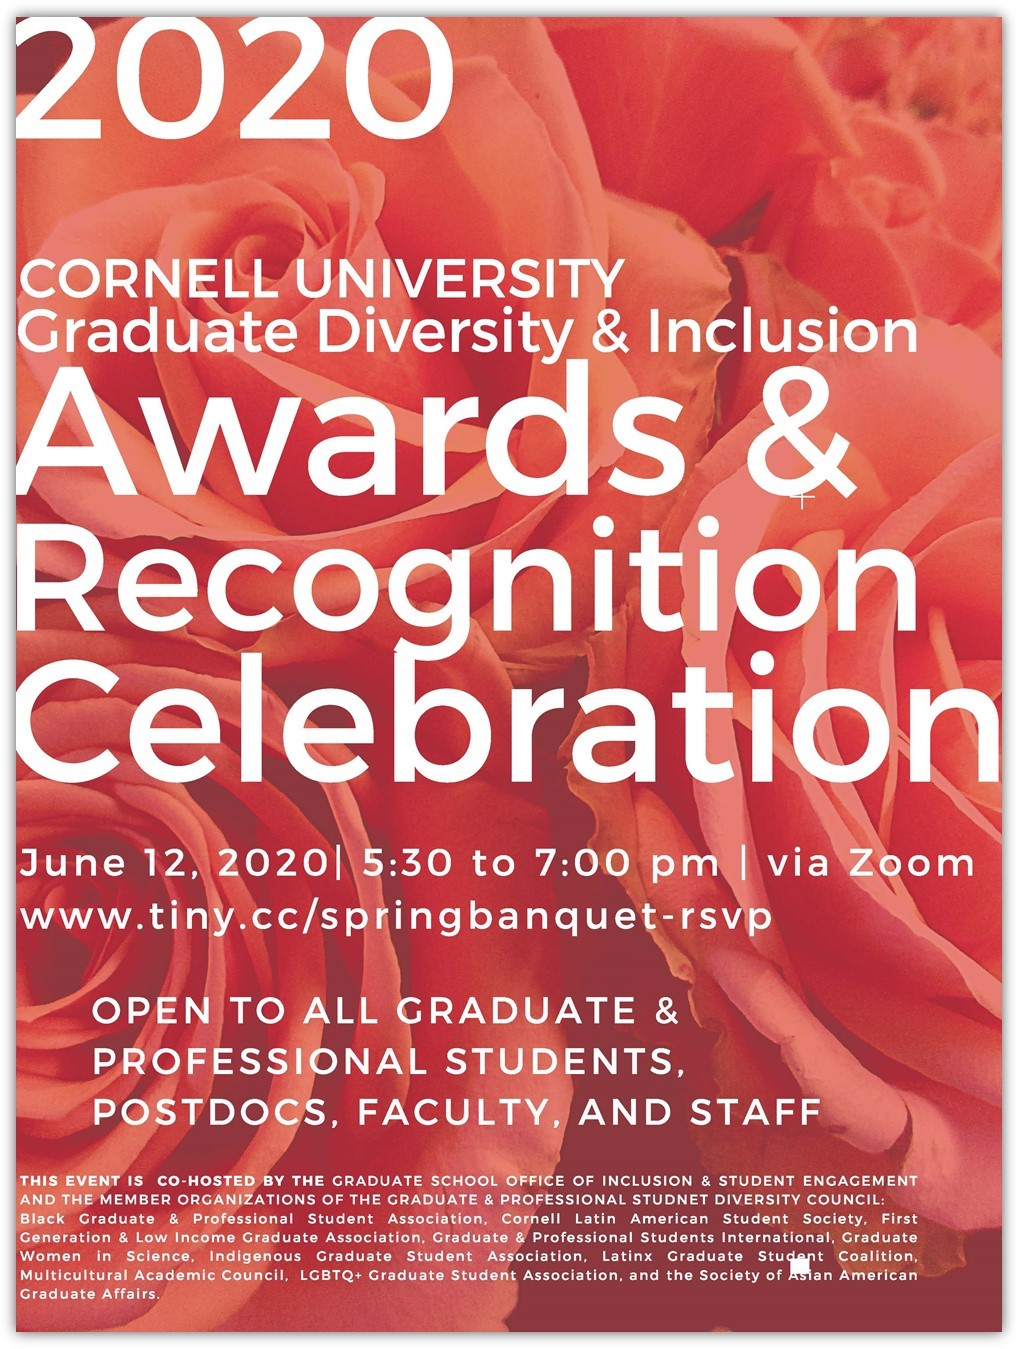 2020 Grad Diversity & Inclusion Award & Recognition Celebration